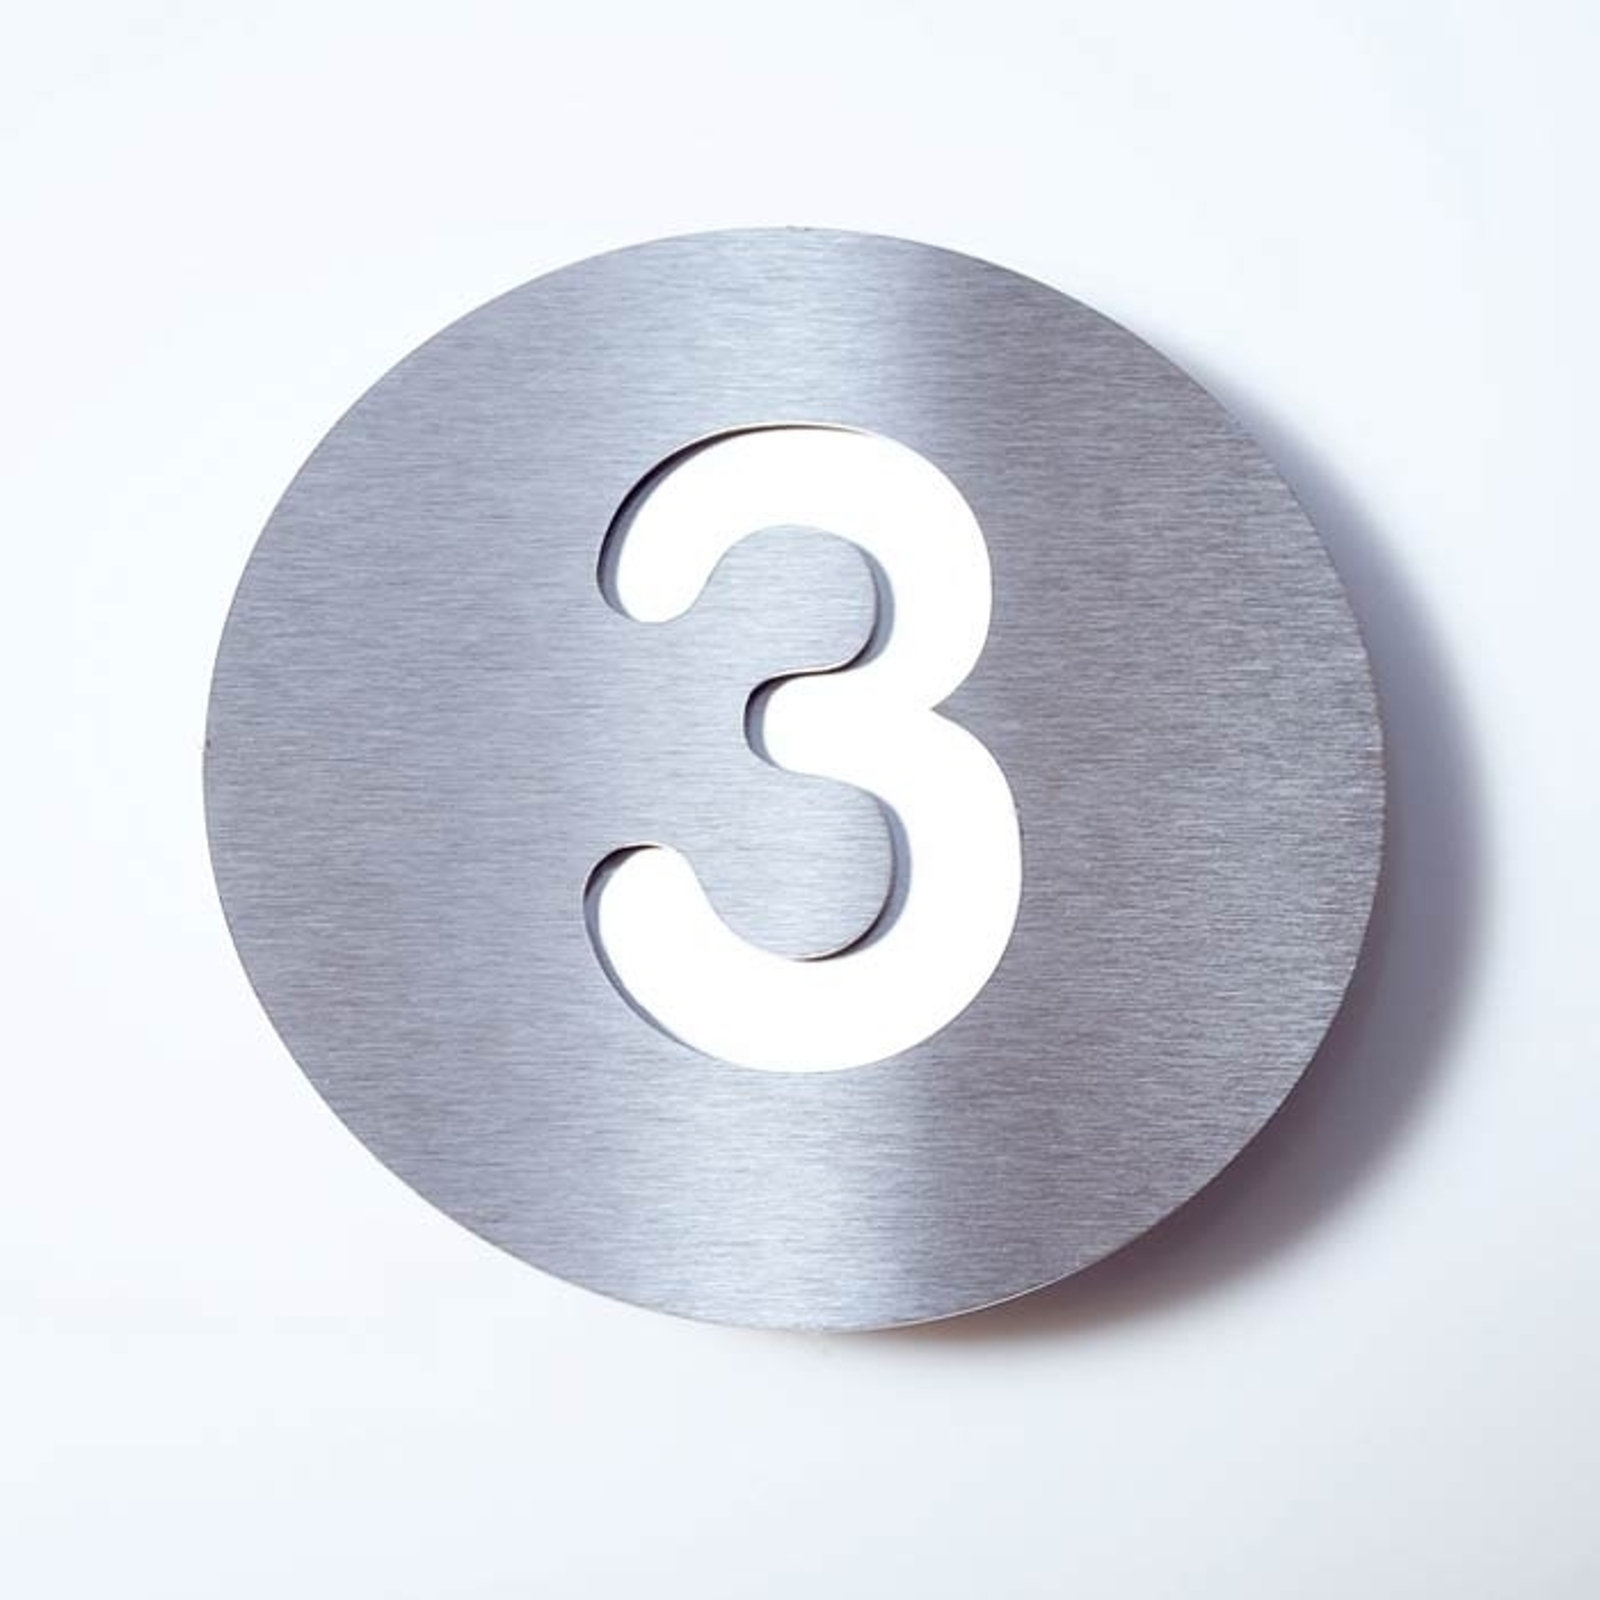 Stainless steel house number Round_1057081_1